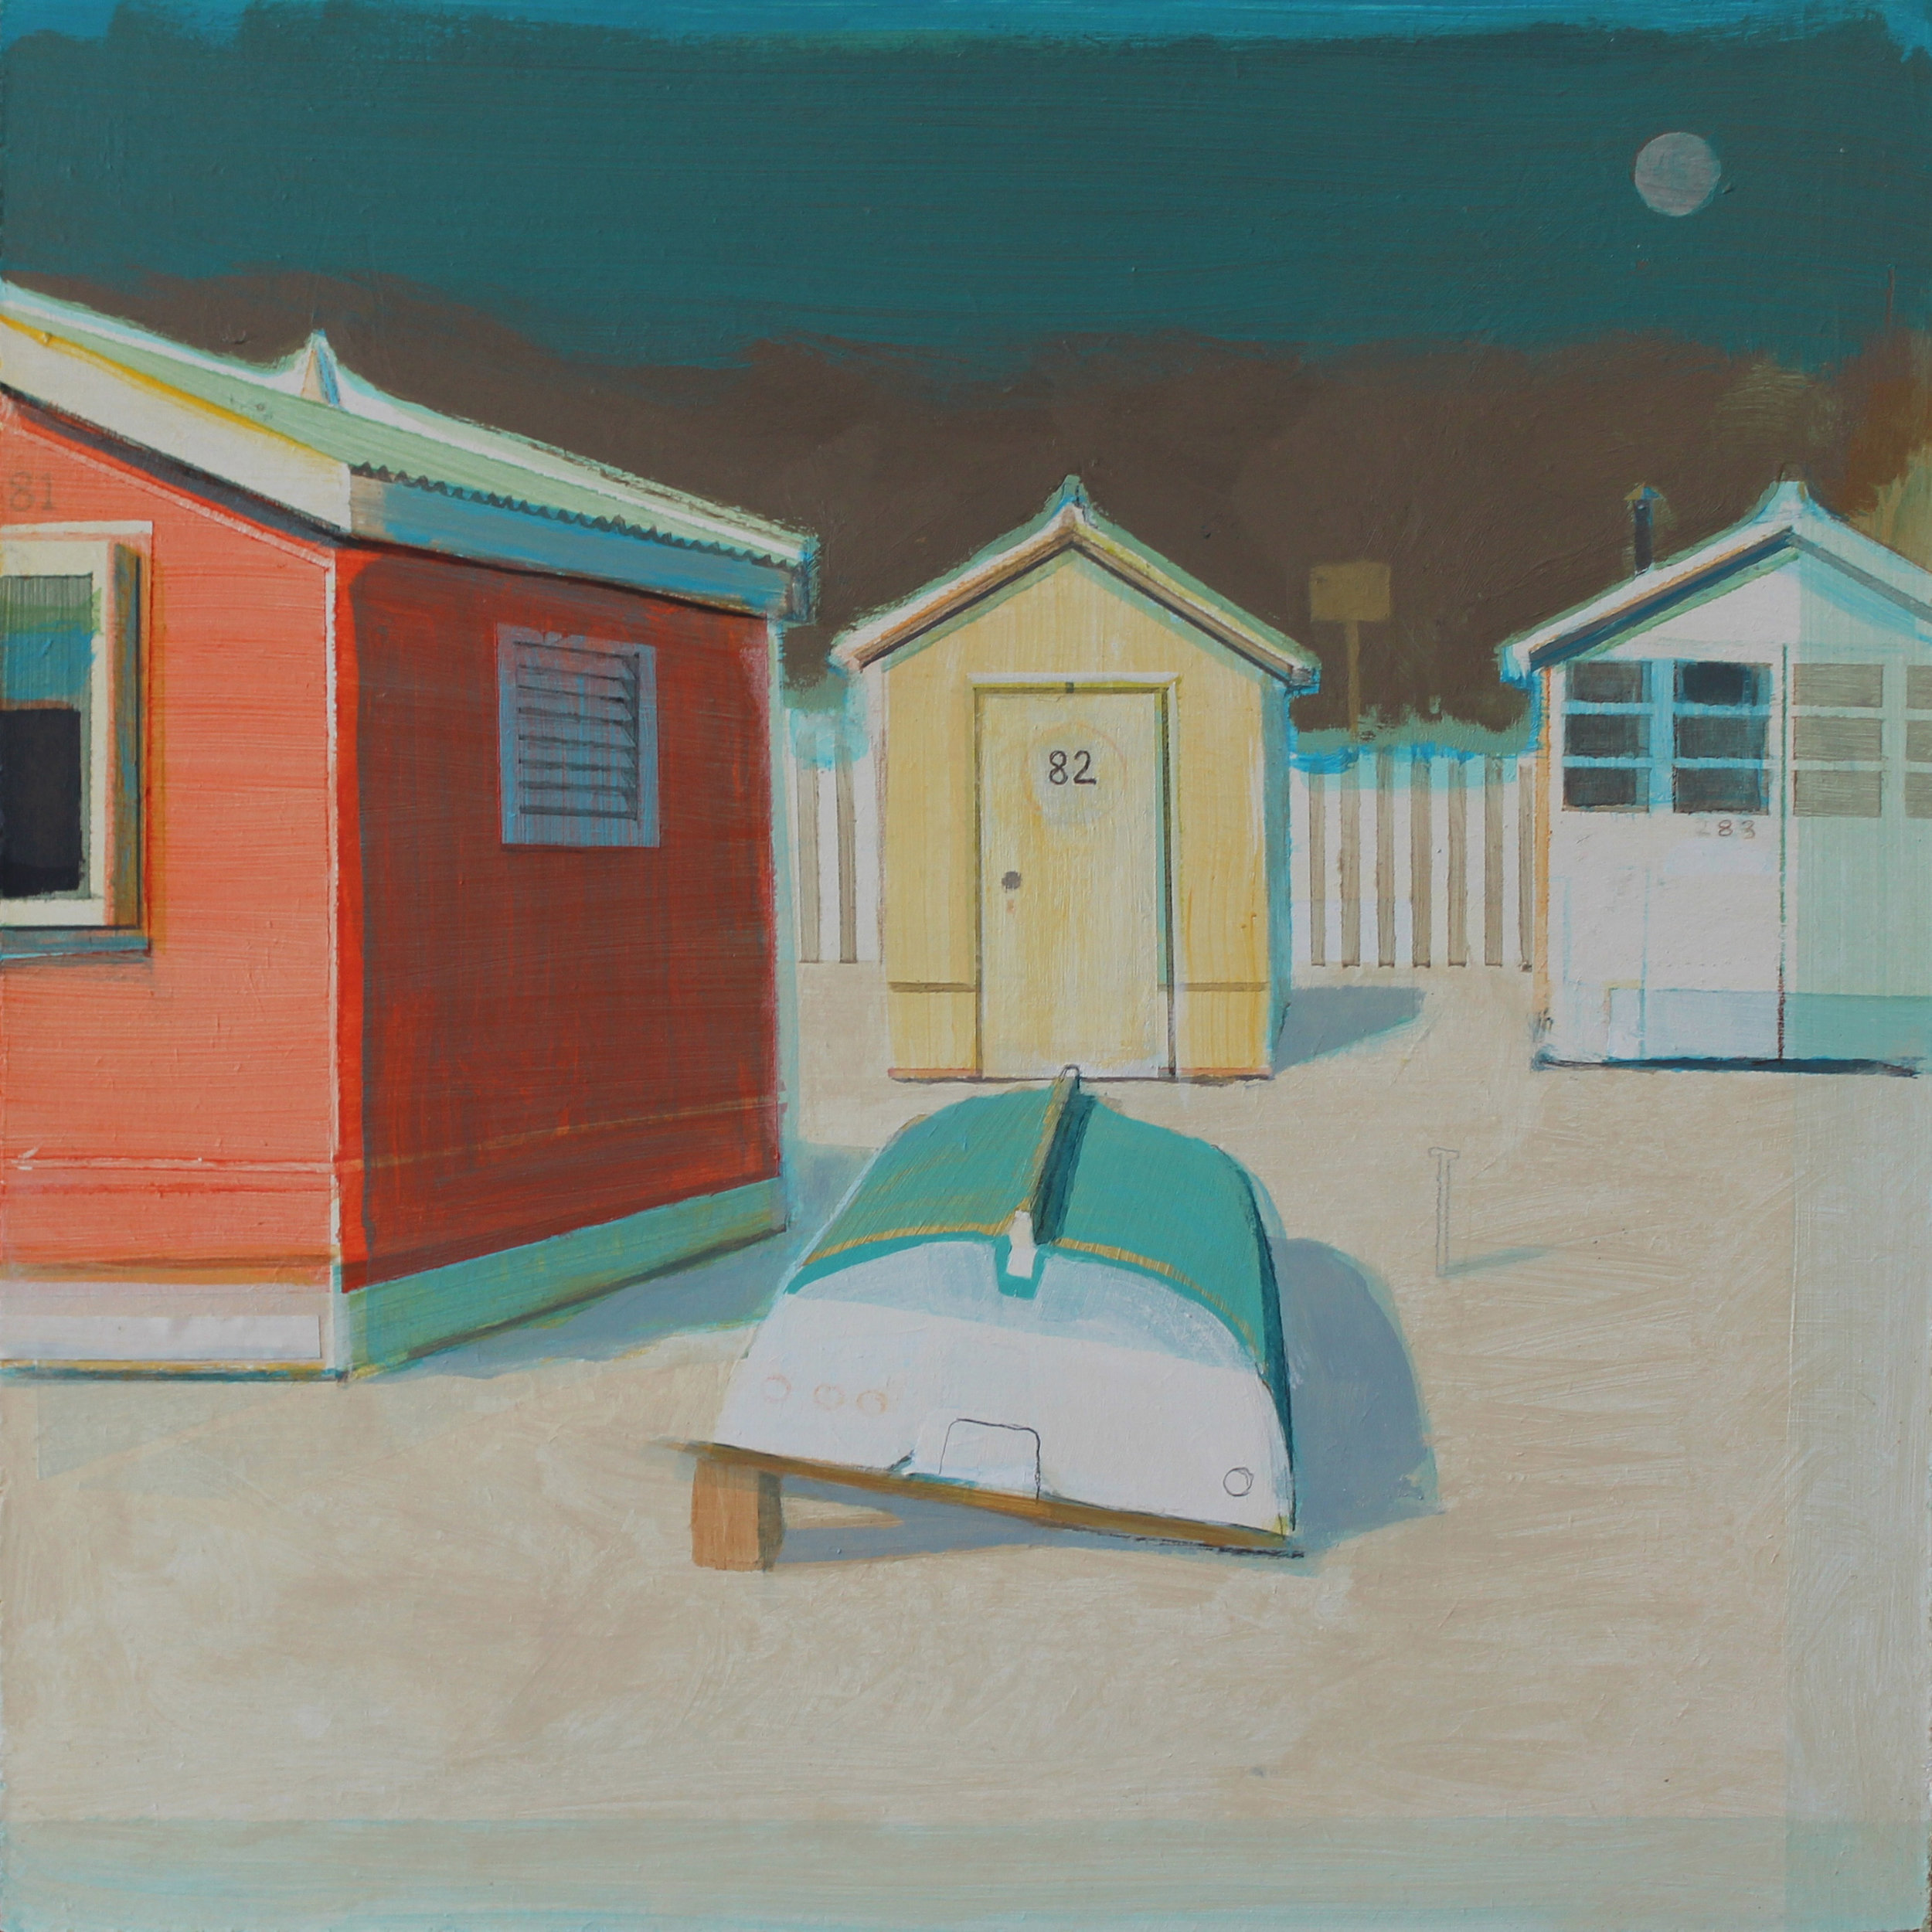 Beach huts in sunshine, acrylic on board, 30x30 cm , £sold.